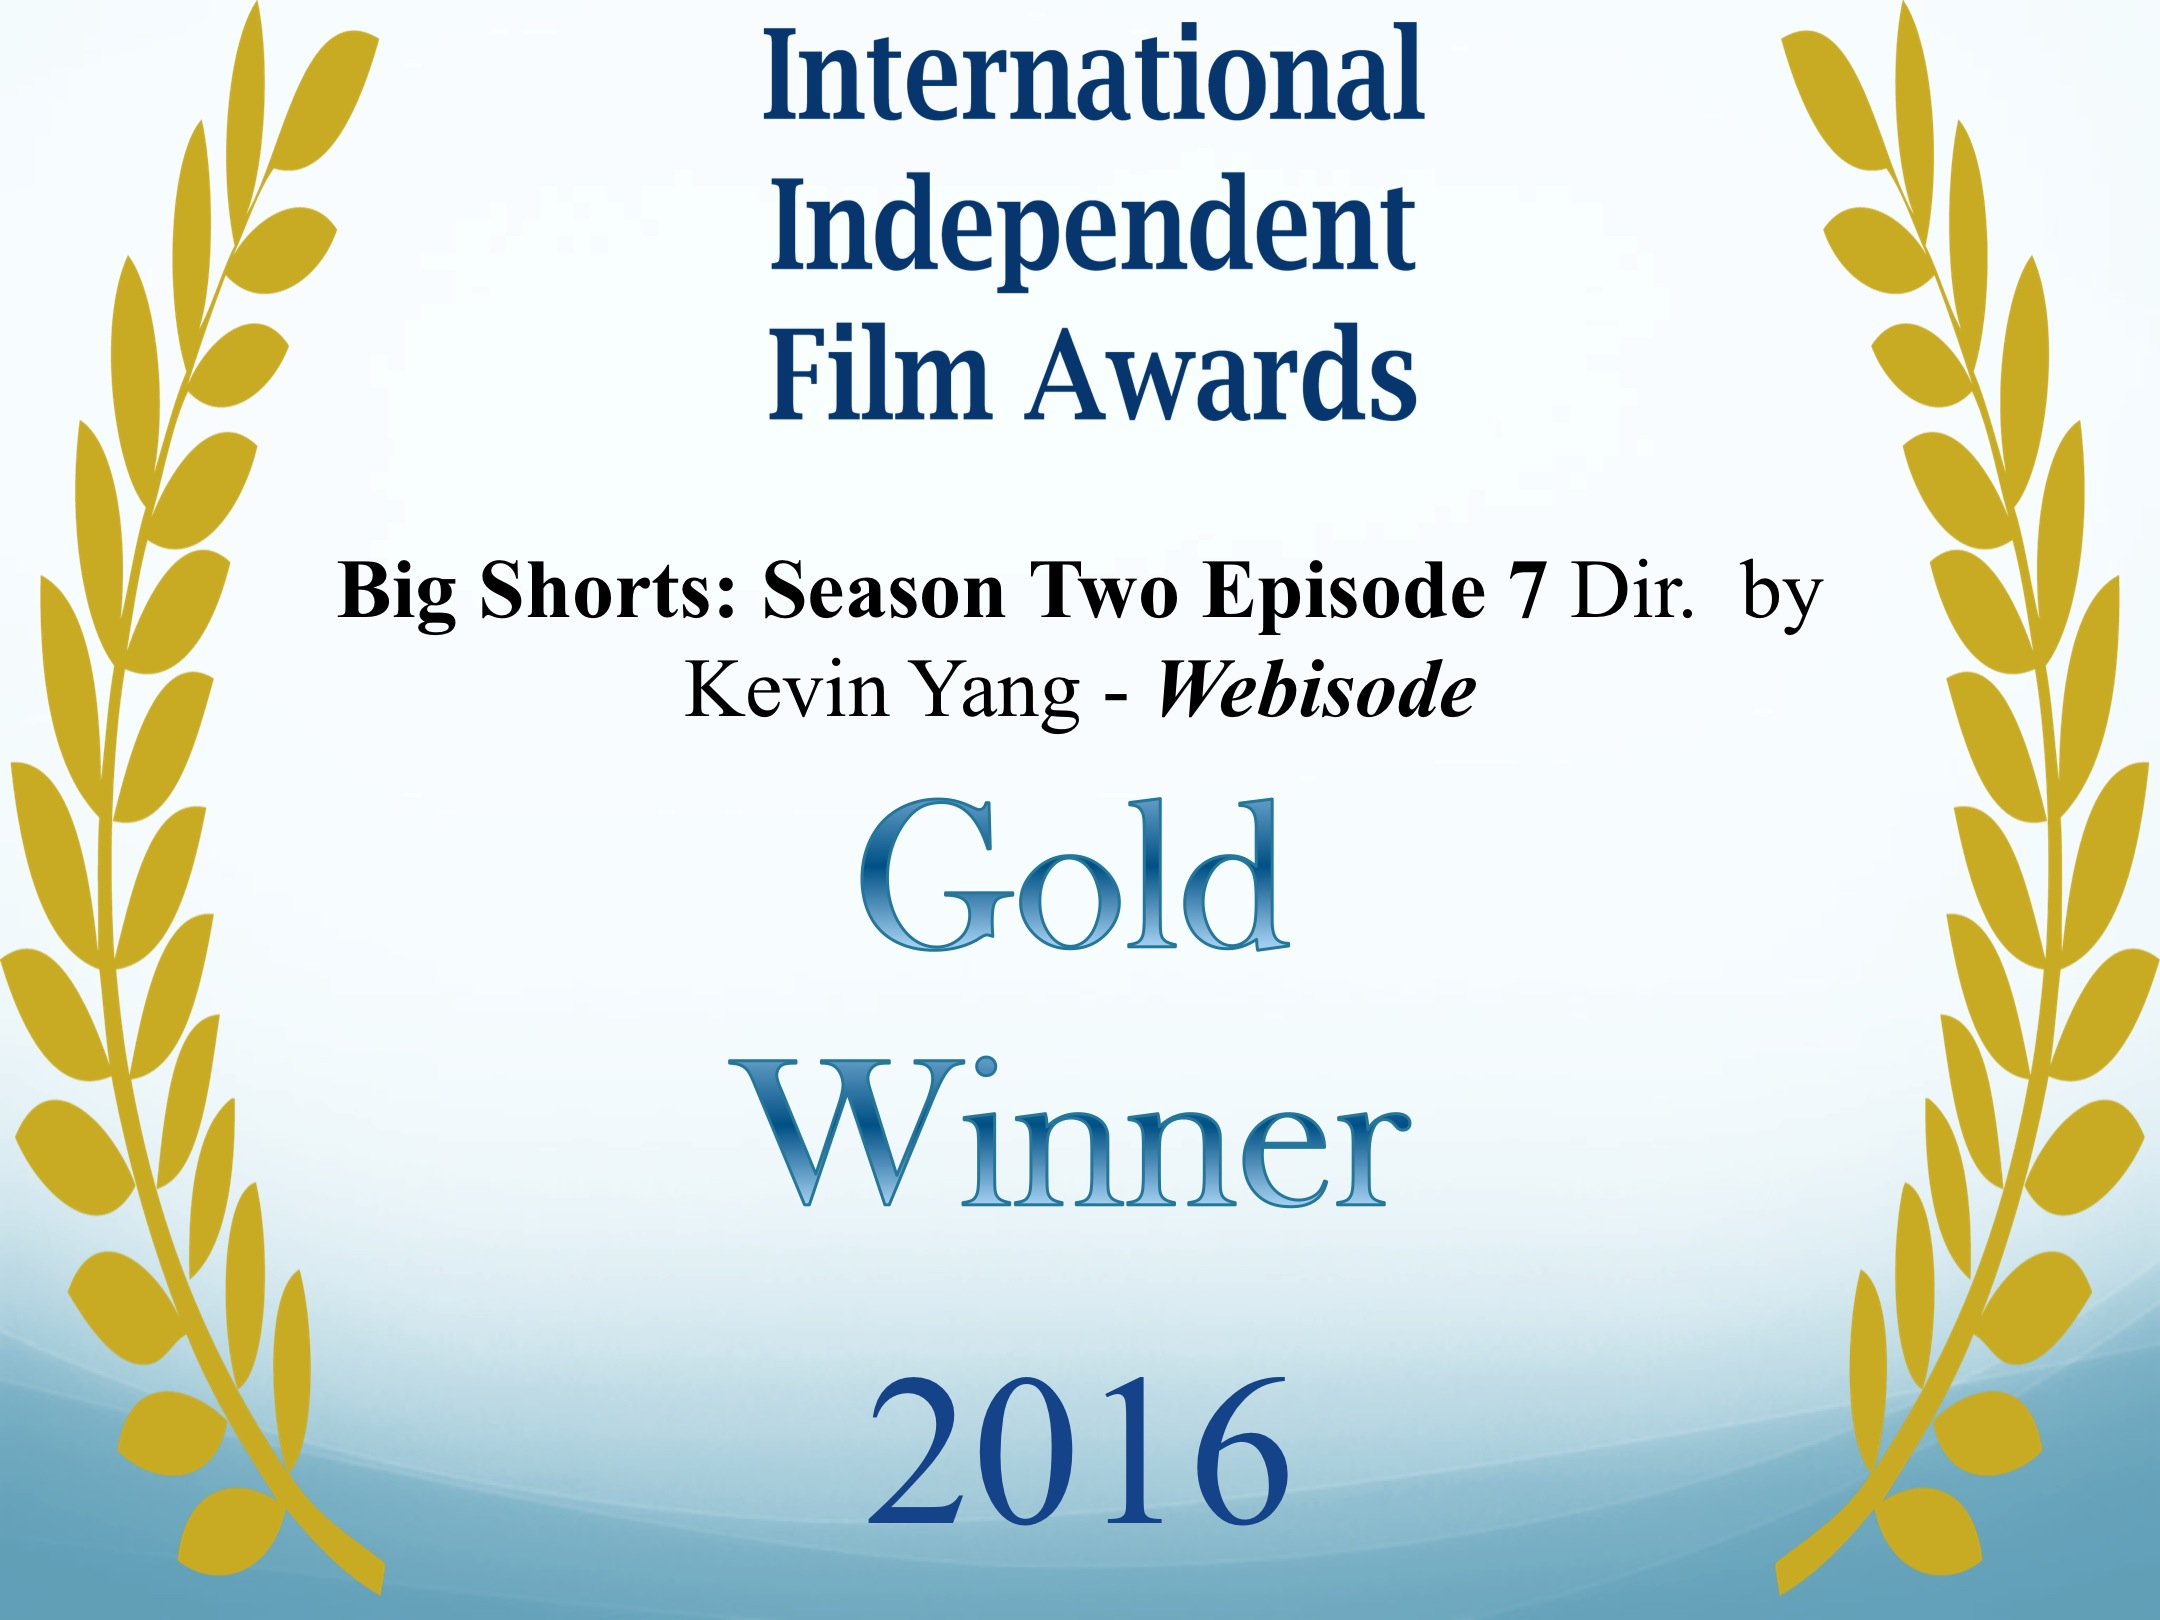 big-shorts-season-two-episode-7-dir-by-kevin-yang-webisode